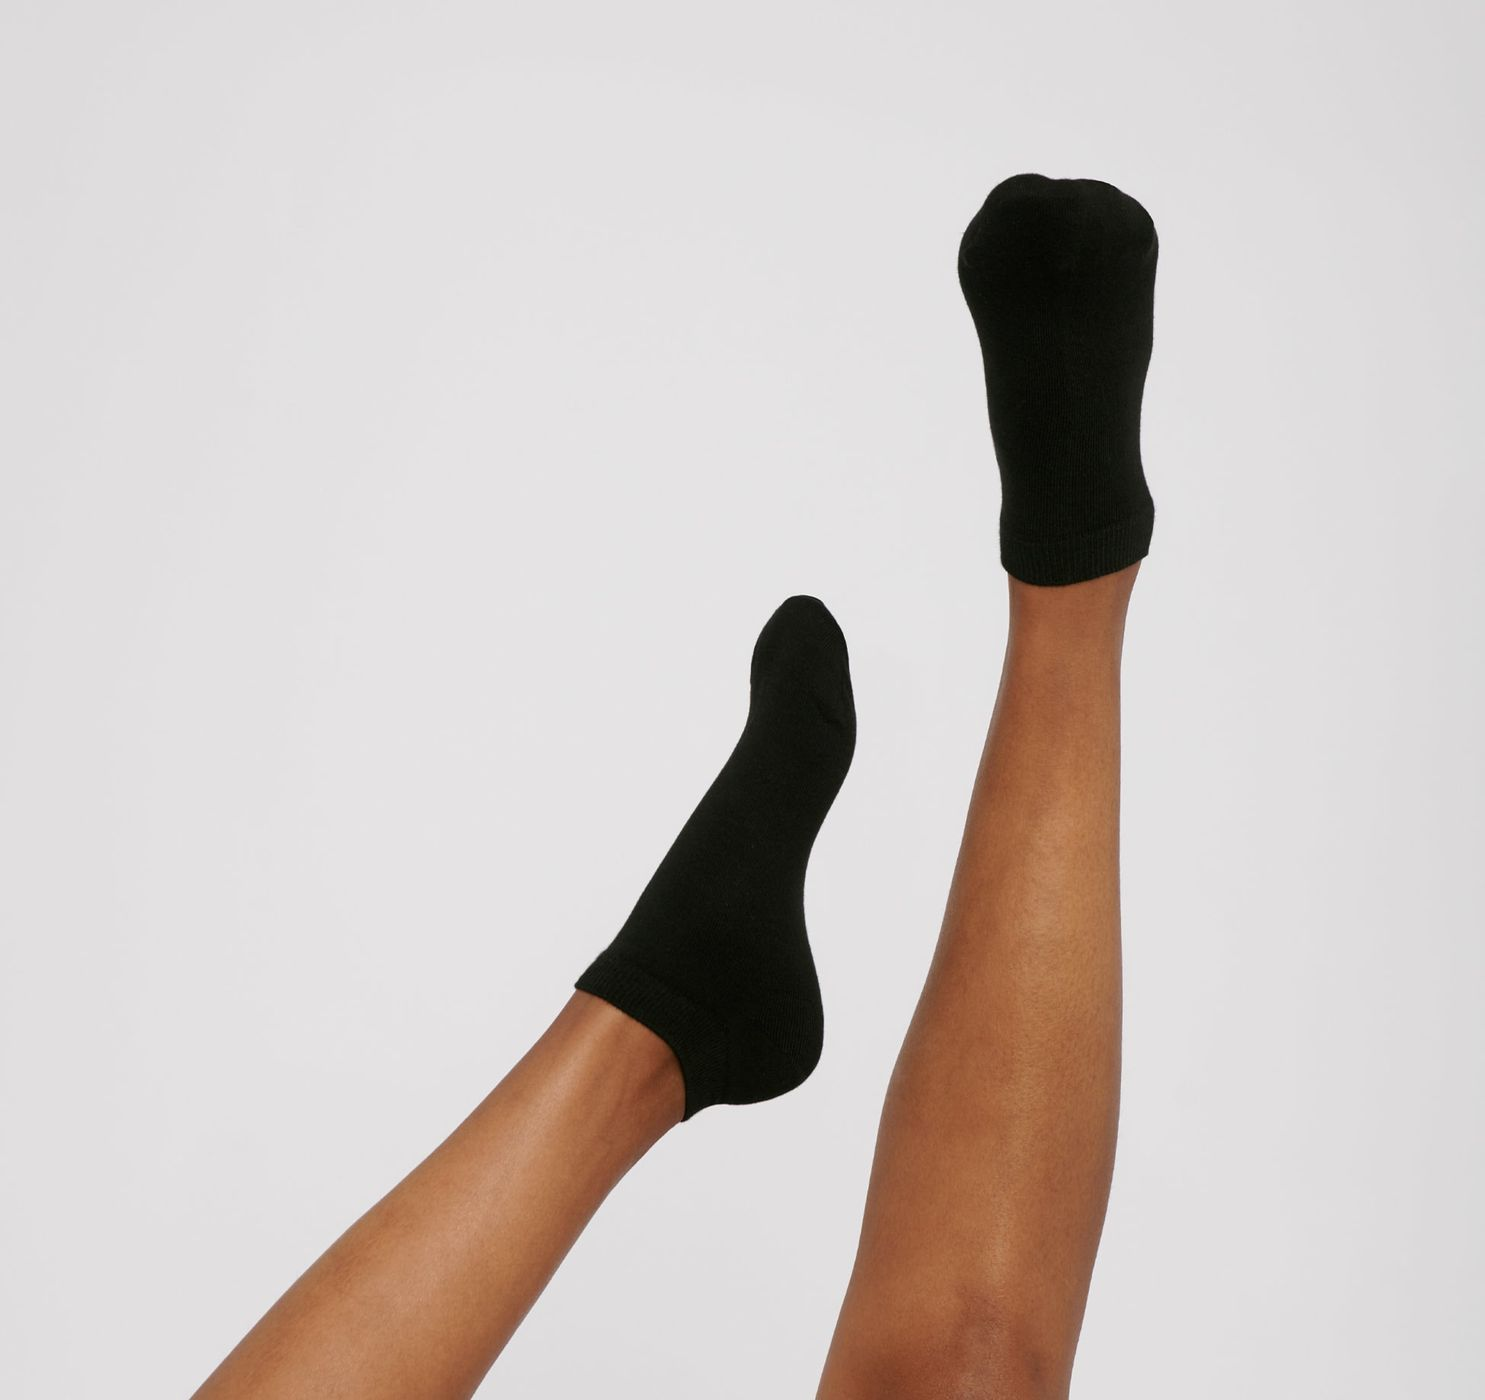 Organic Basics - W's Organic Cotton Ankle Socks 2-Pack - Weekendbee - sustainable sportswear